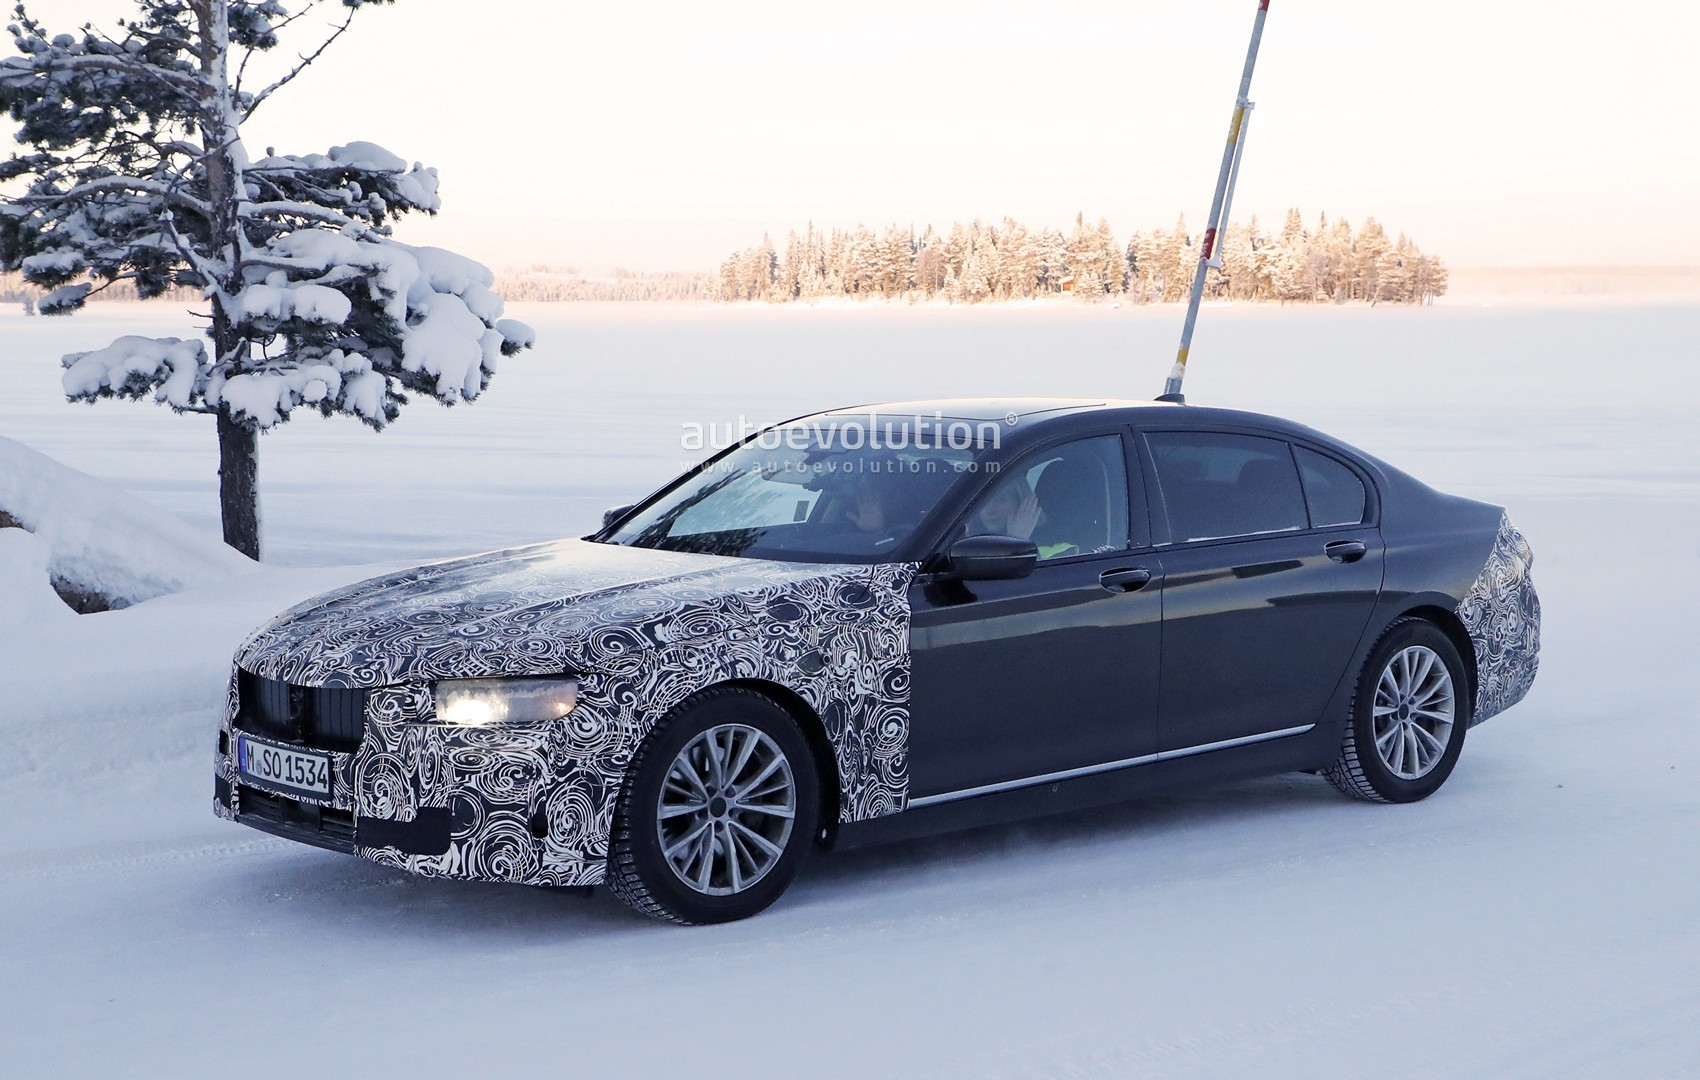 Bmw 7 Series Facelift Spied Winter Testing Without A